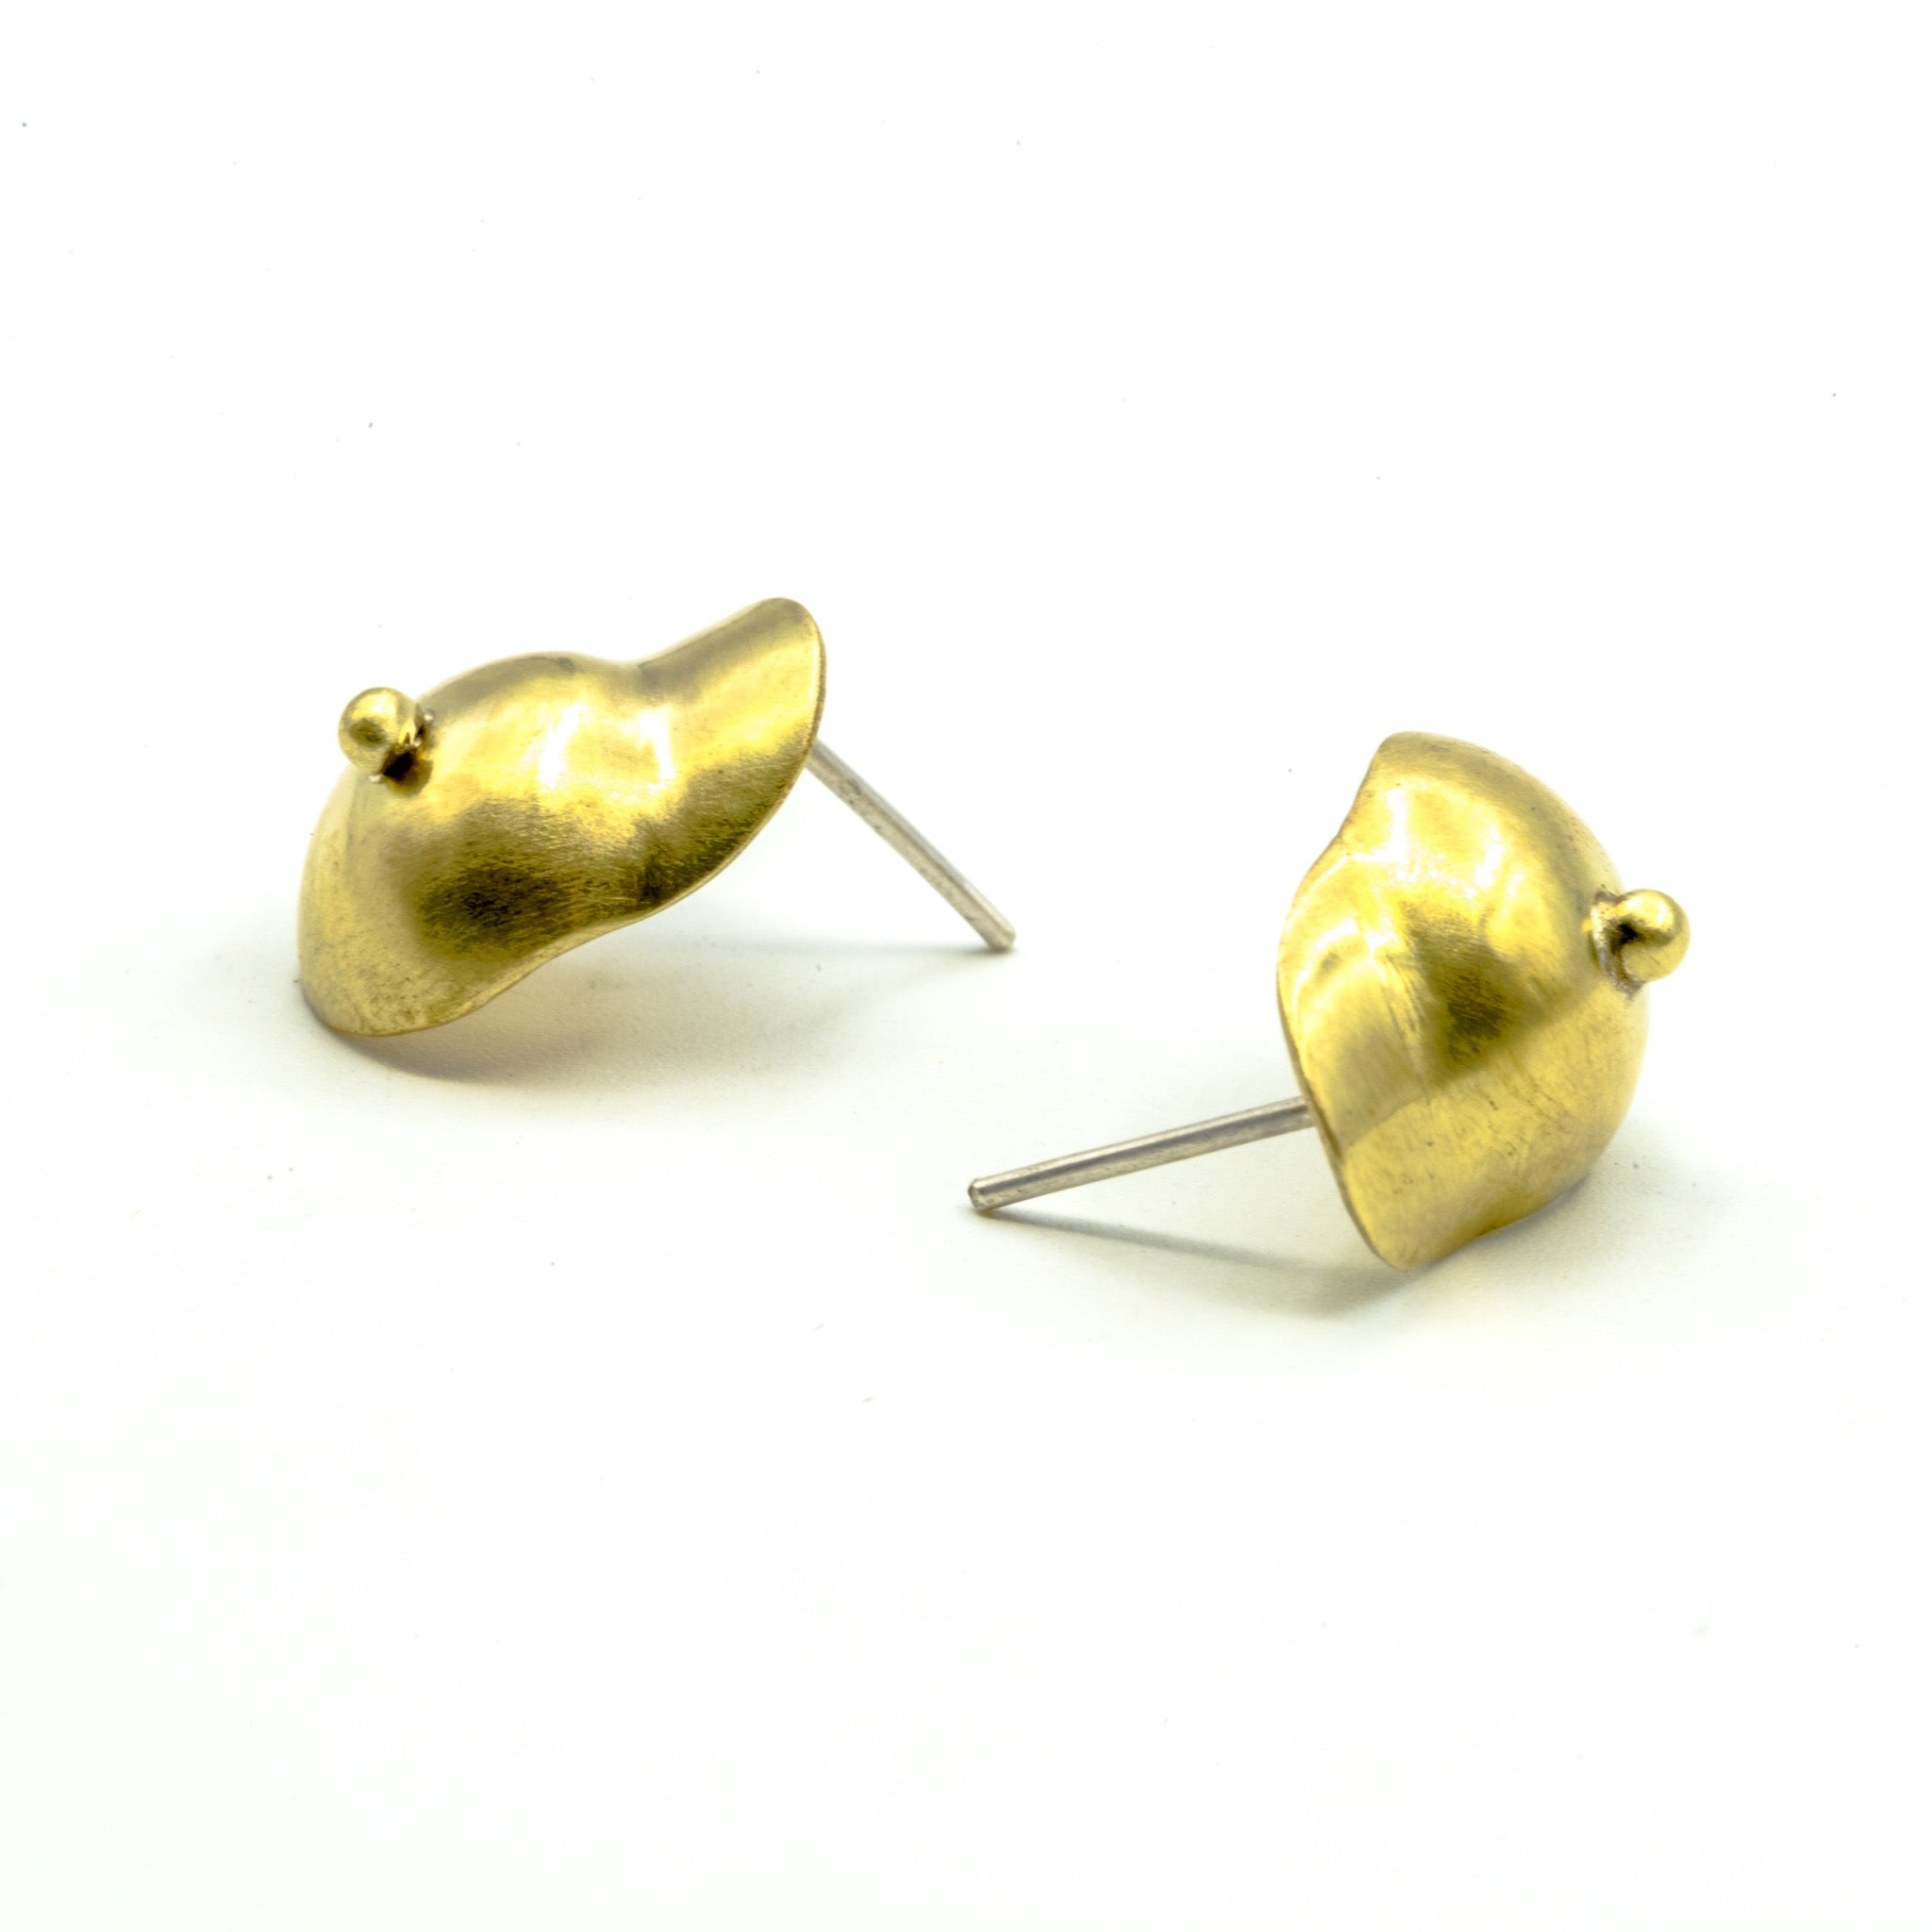 boobie shaped brass earrings on which background